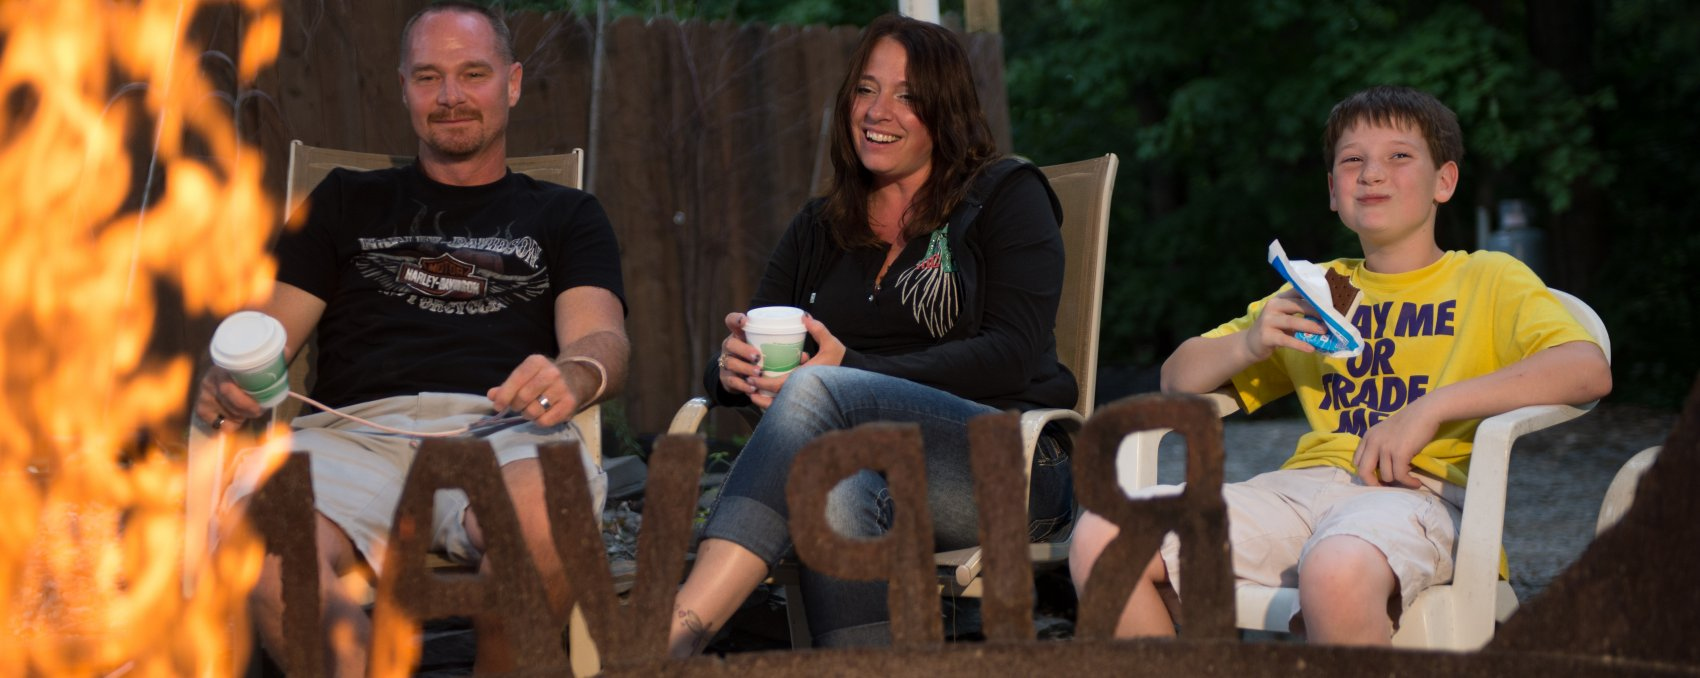 Family sitting around campfire at Rip Van Winkle Campgrounds